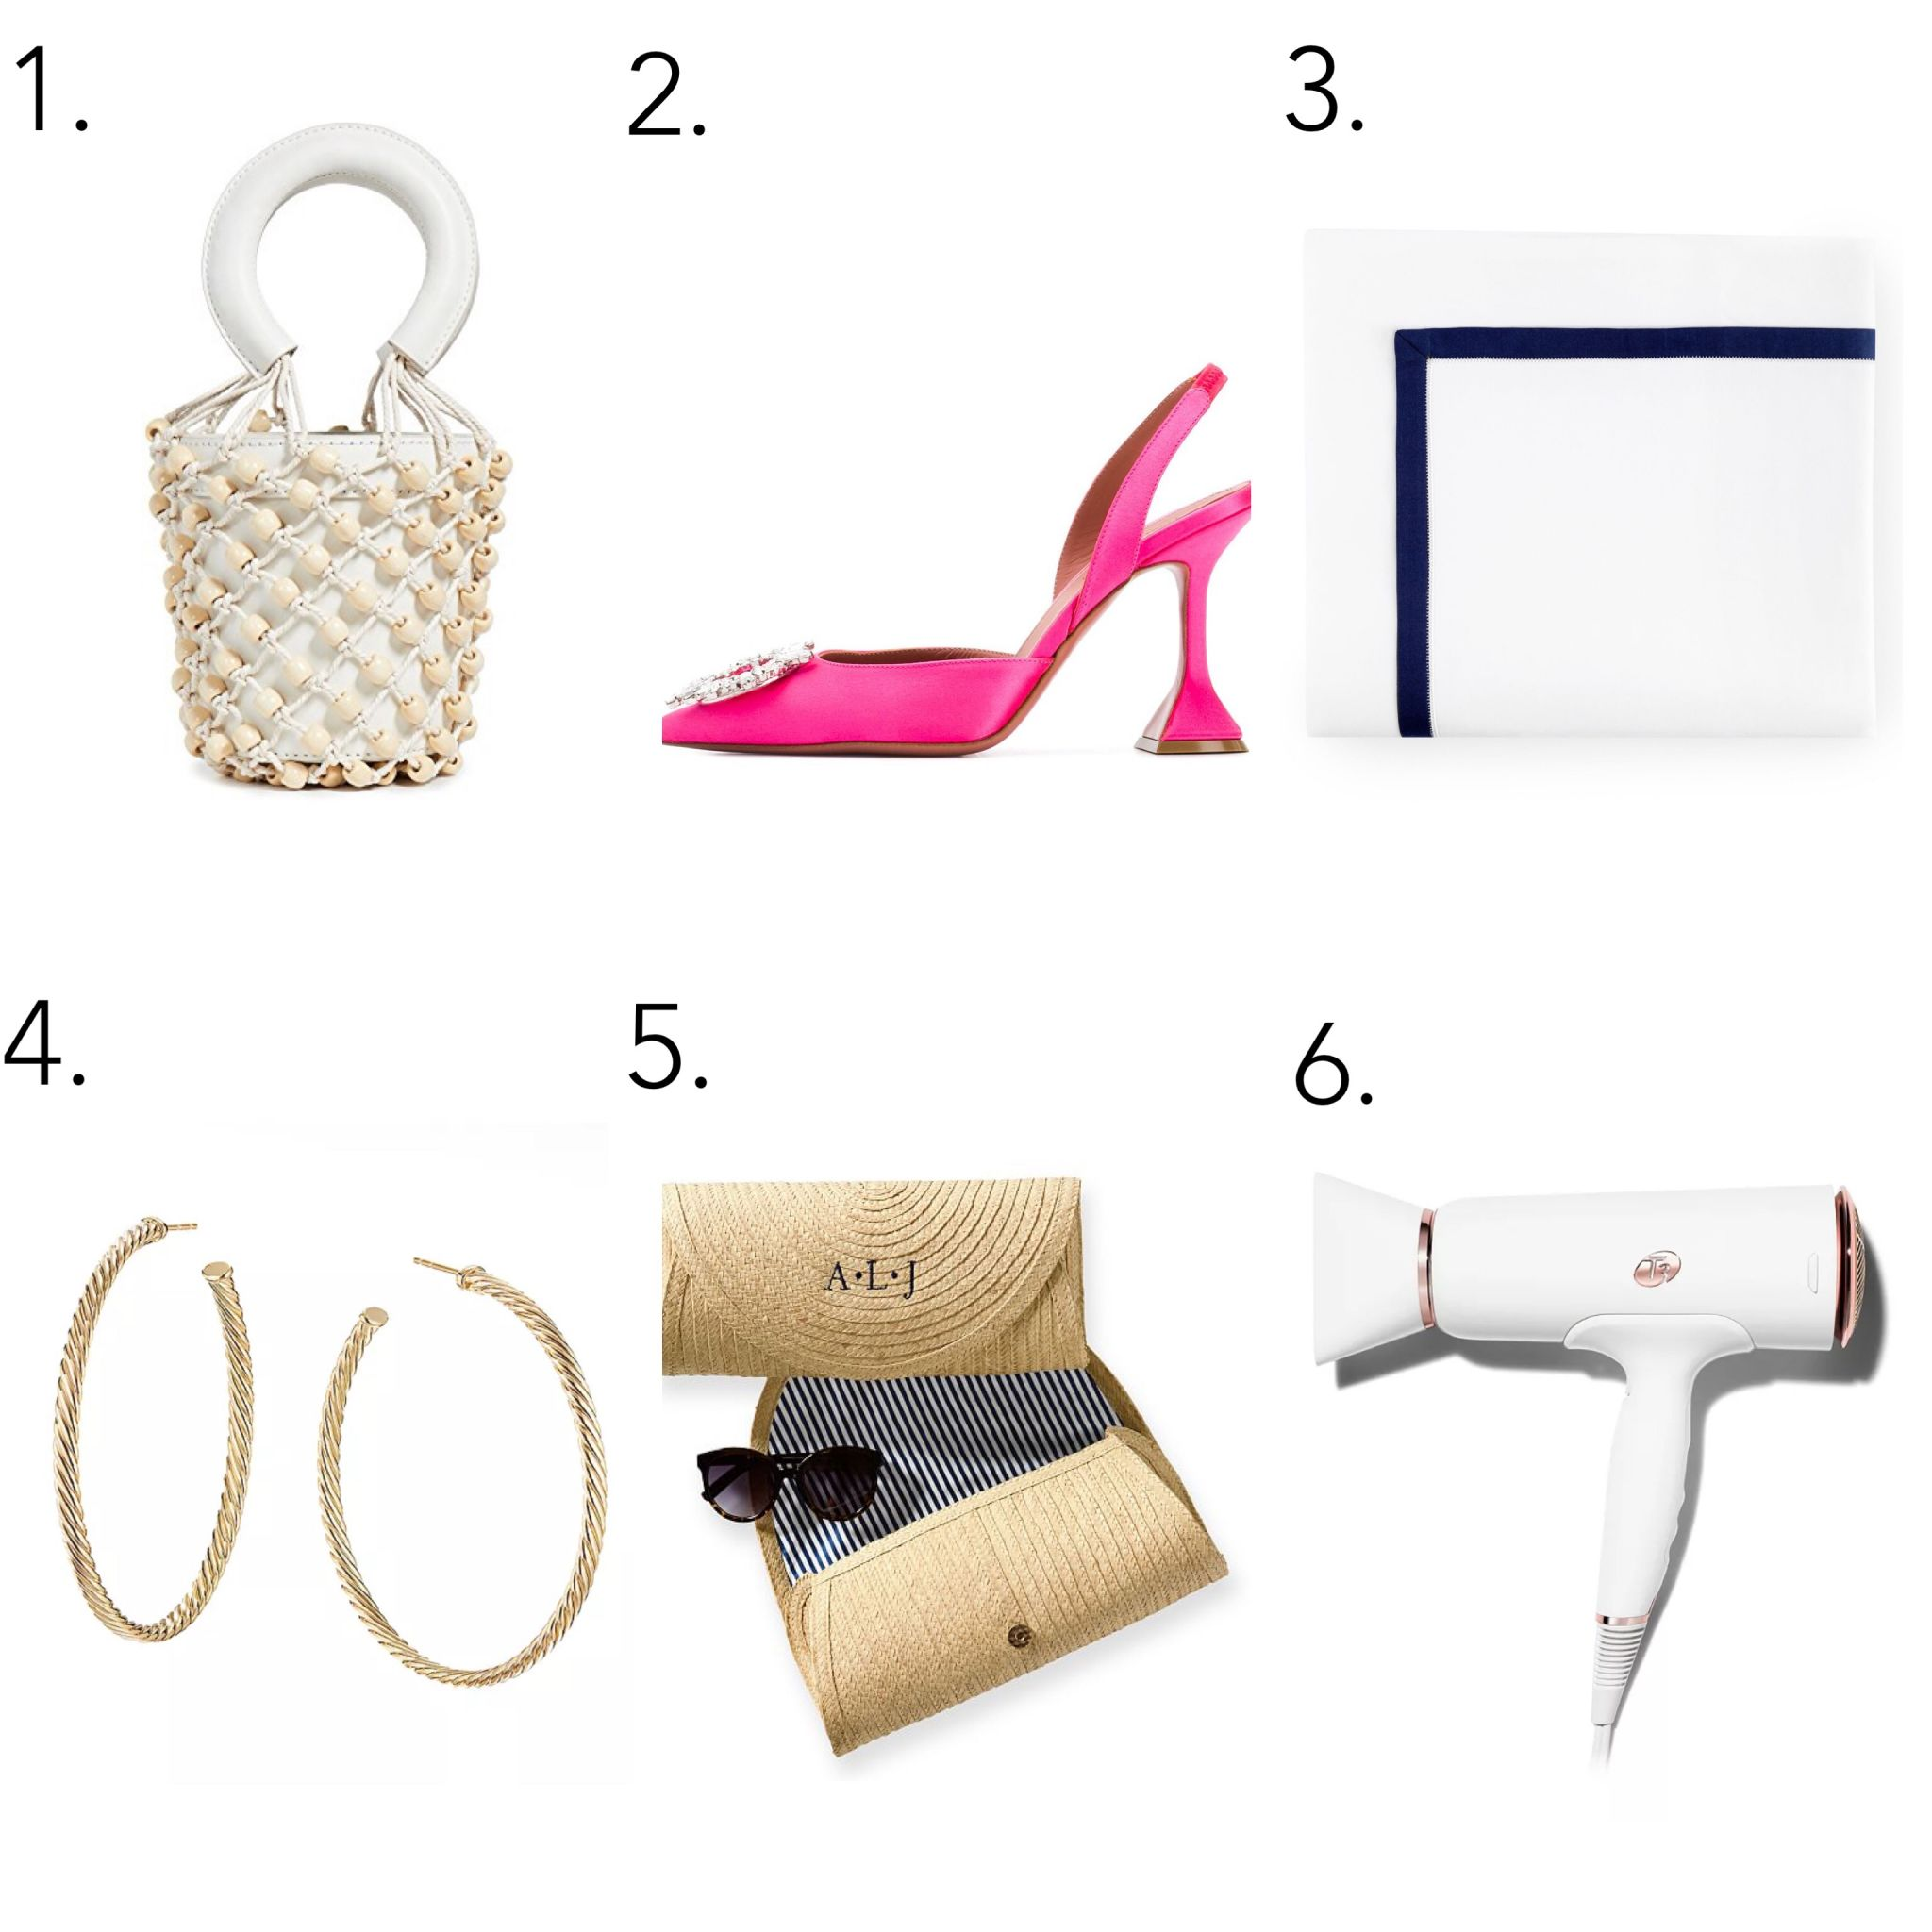 atlanta blogger monica awe shares her mother's day wish list. staud white bag, monogram straw cultch, david yurman gold large hoops, AMANDO FLAT SHEET, mark and spencer monogram straw clutch, t3 blow dryer, Amina Muaddi pink pumps,